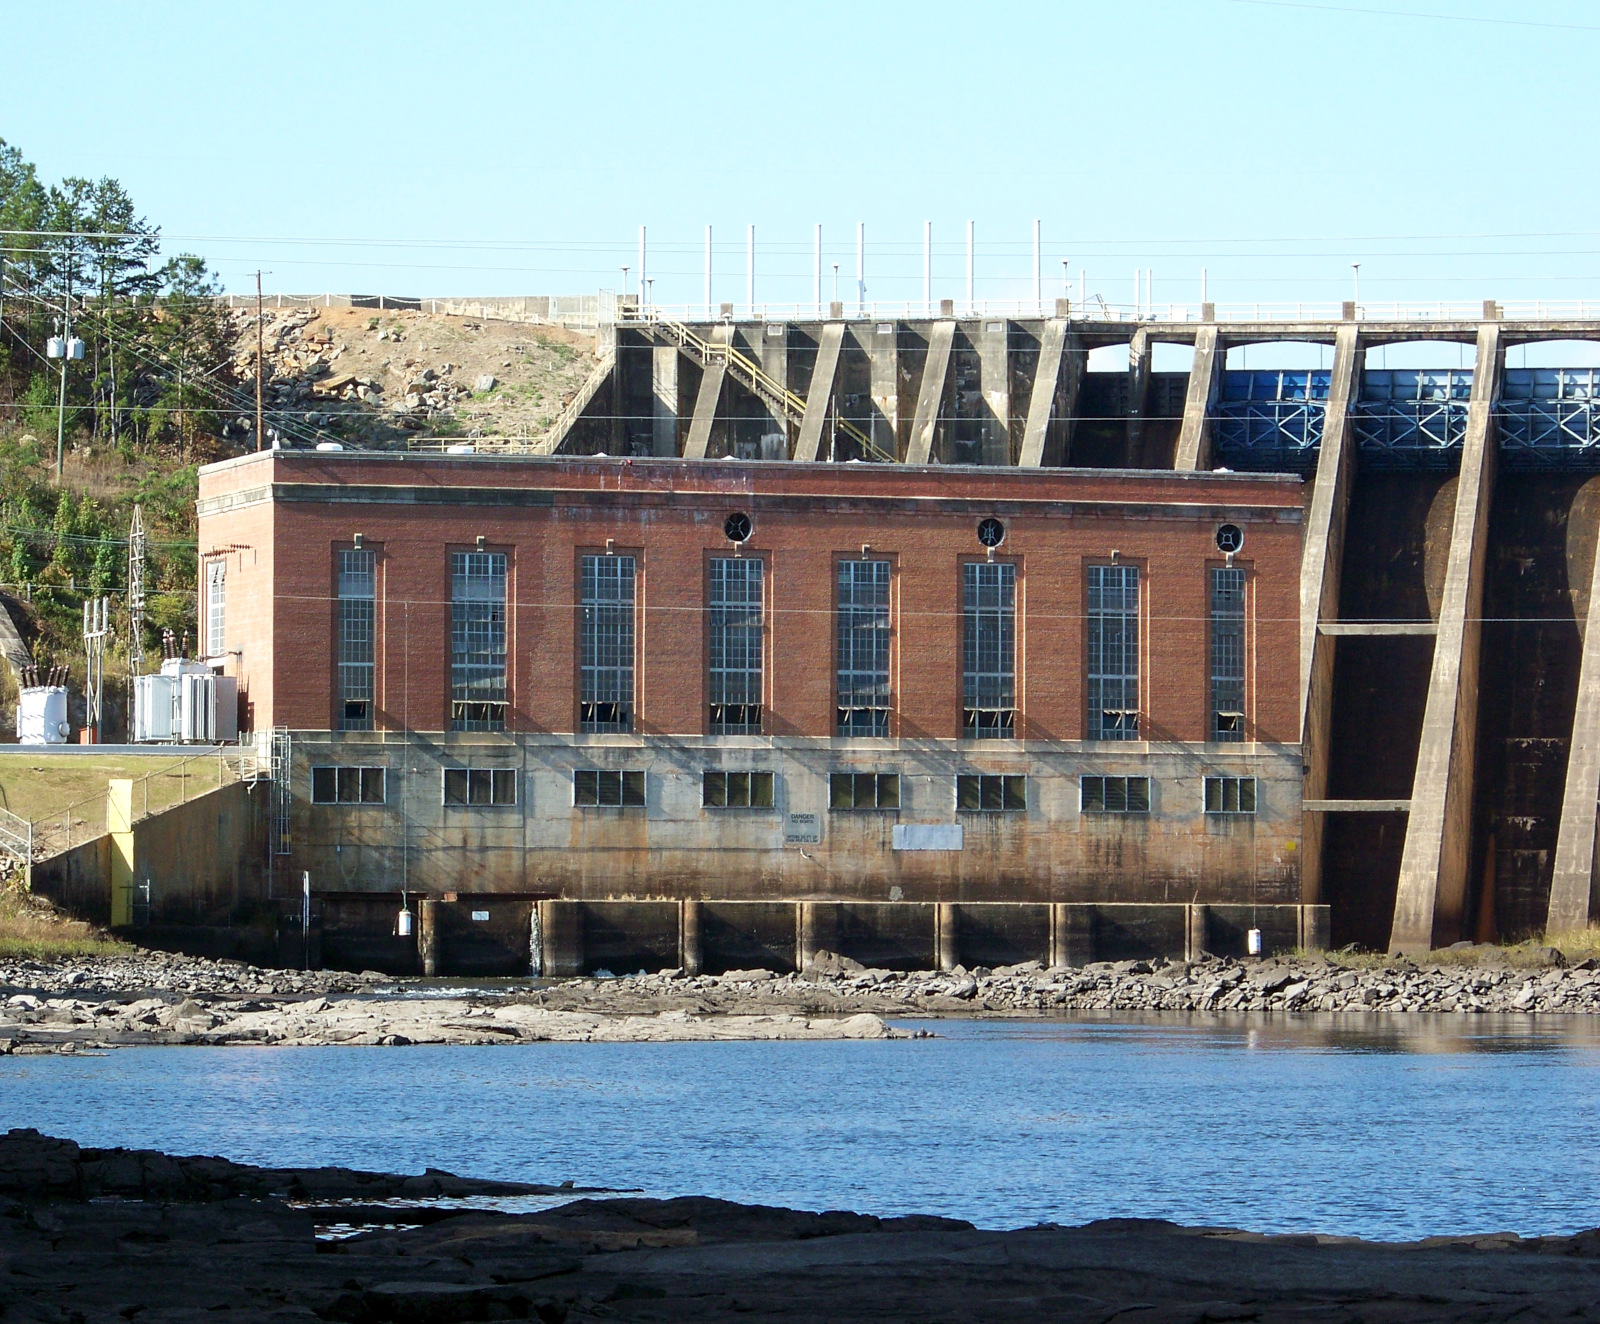 The original powerhouse of Bartletts Ferry Dam, built 1924-1925 and expanded after World War II.